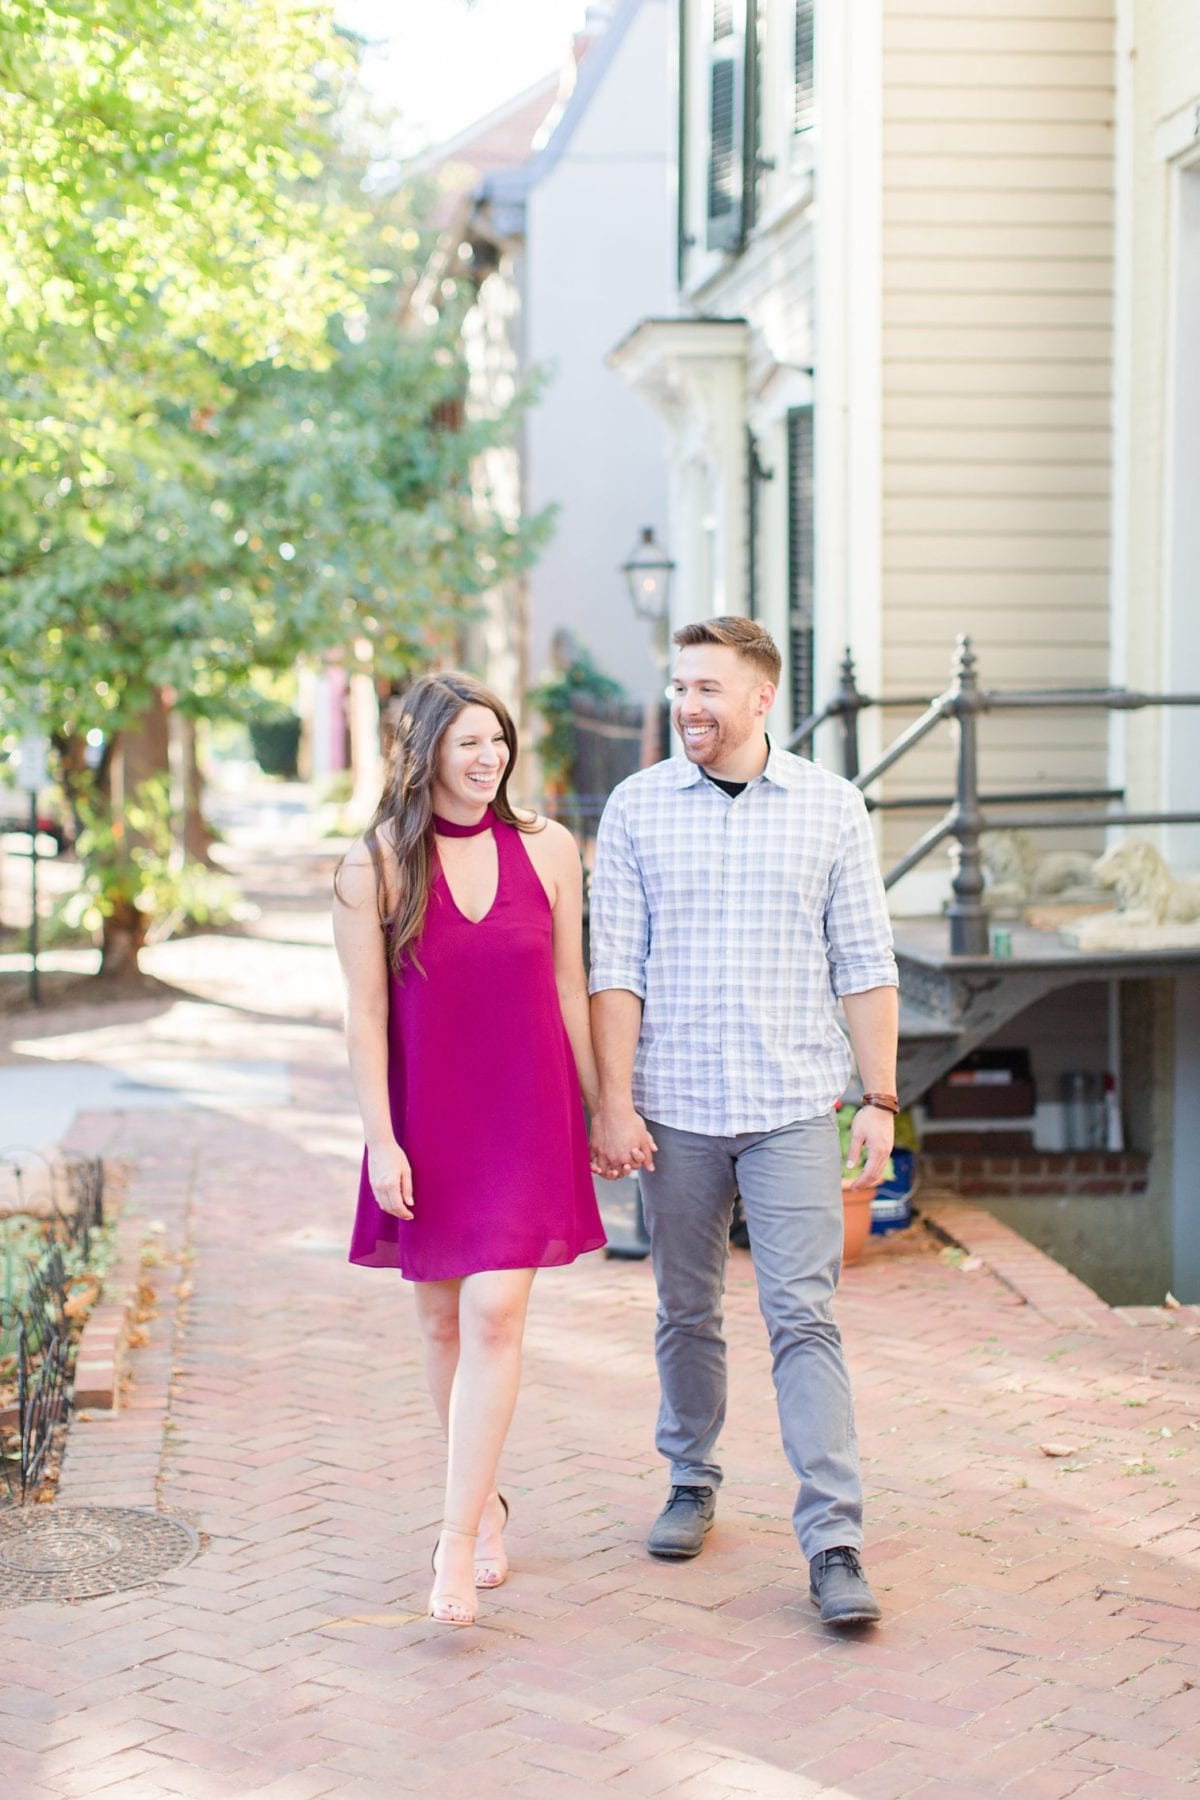 Fall Old Town Alexandria Engagement Photos Megan Kelsey Photography Virginia-4.jpg